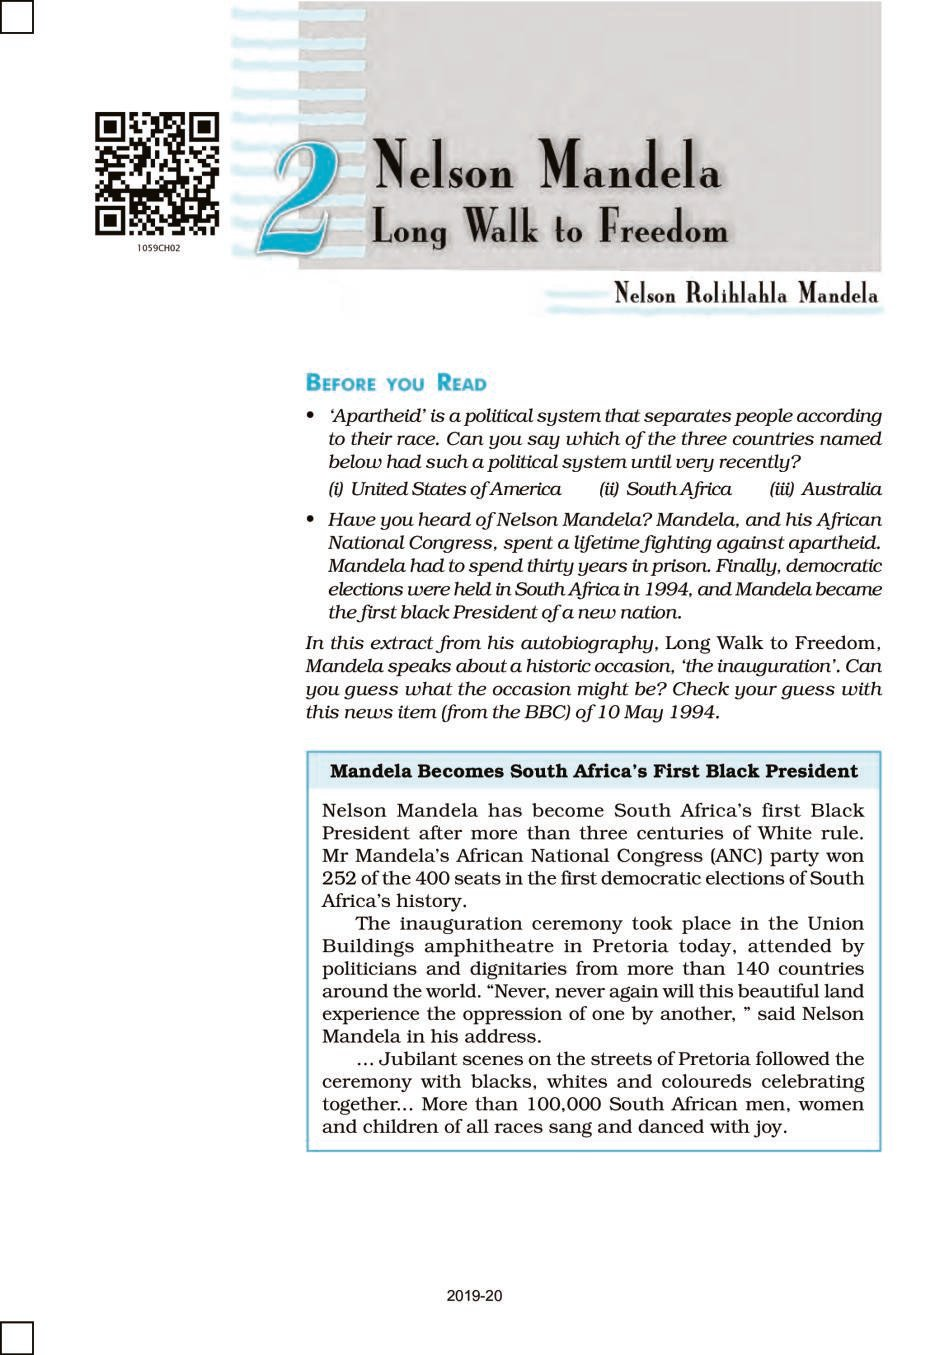 NCERT Book Class 10 English (First Flight) Chapter 2 Nelson Mandela Long Walk to Freedom; A Tiger in the Zoo - Page 1